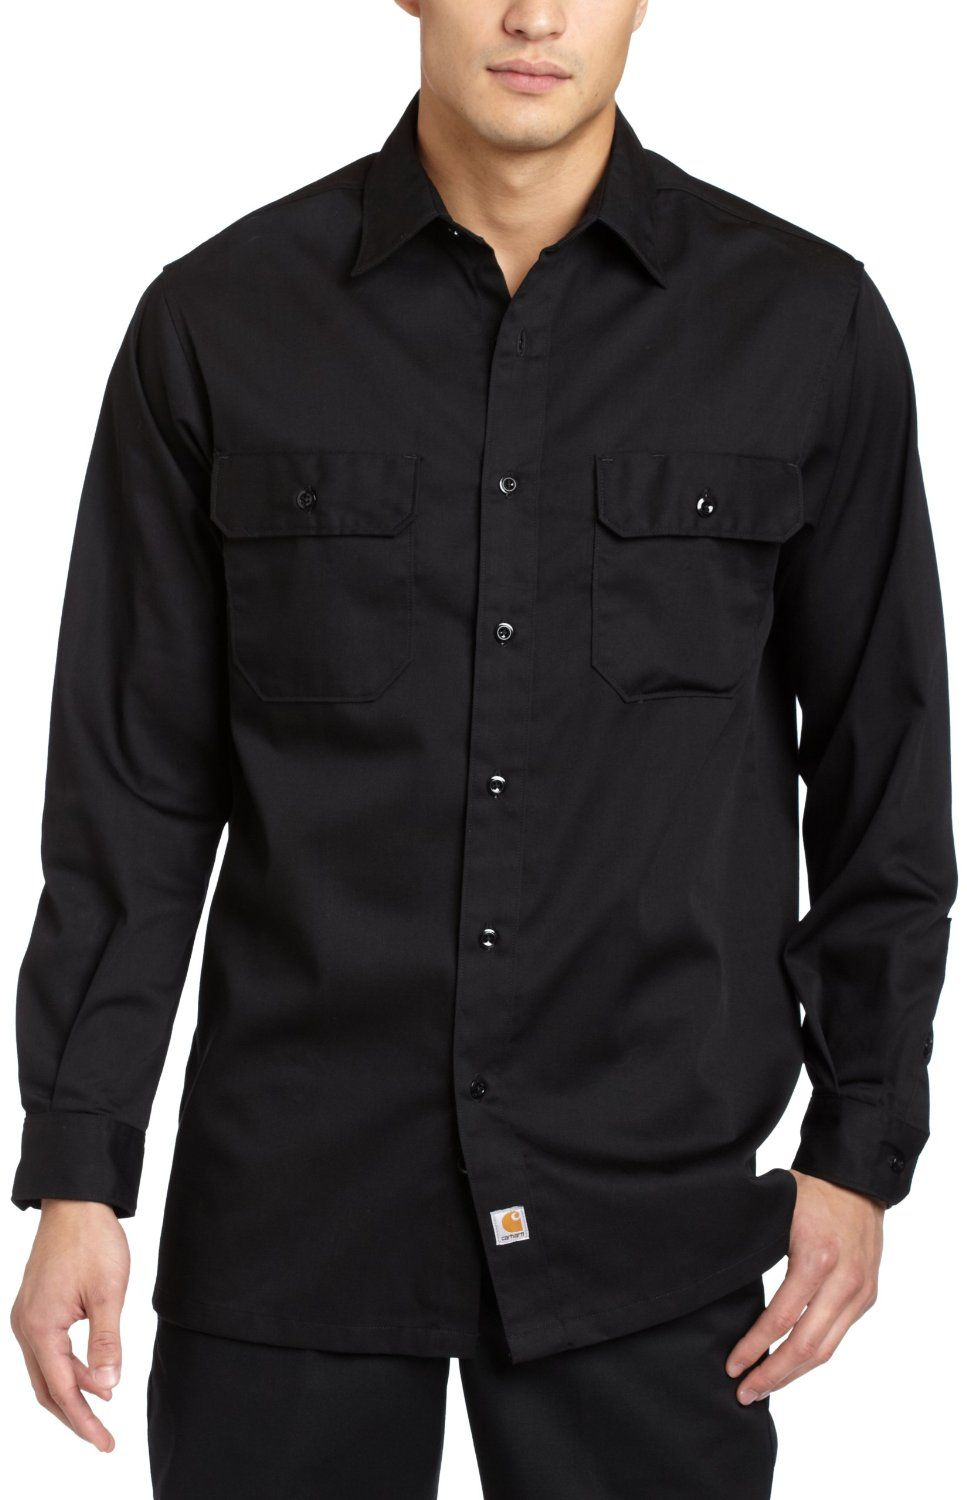 Black Button Up Shirt Clothes Pinterest Black Button